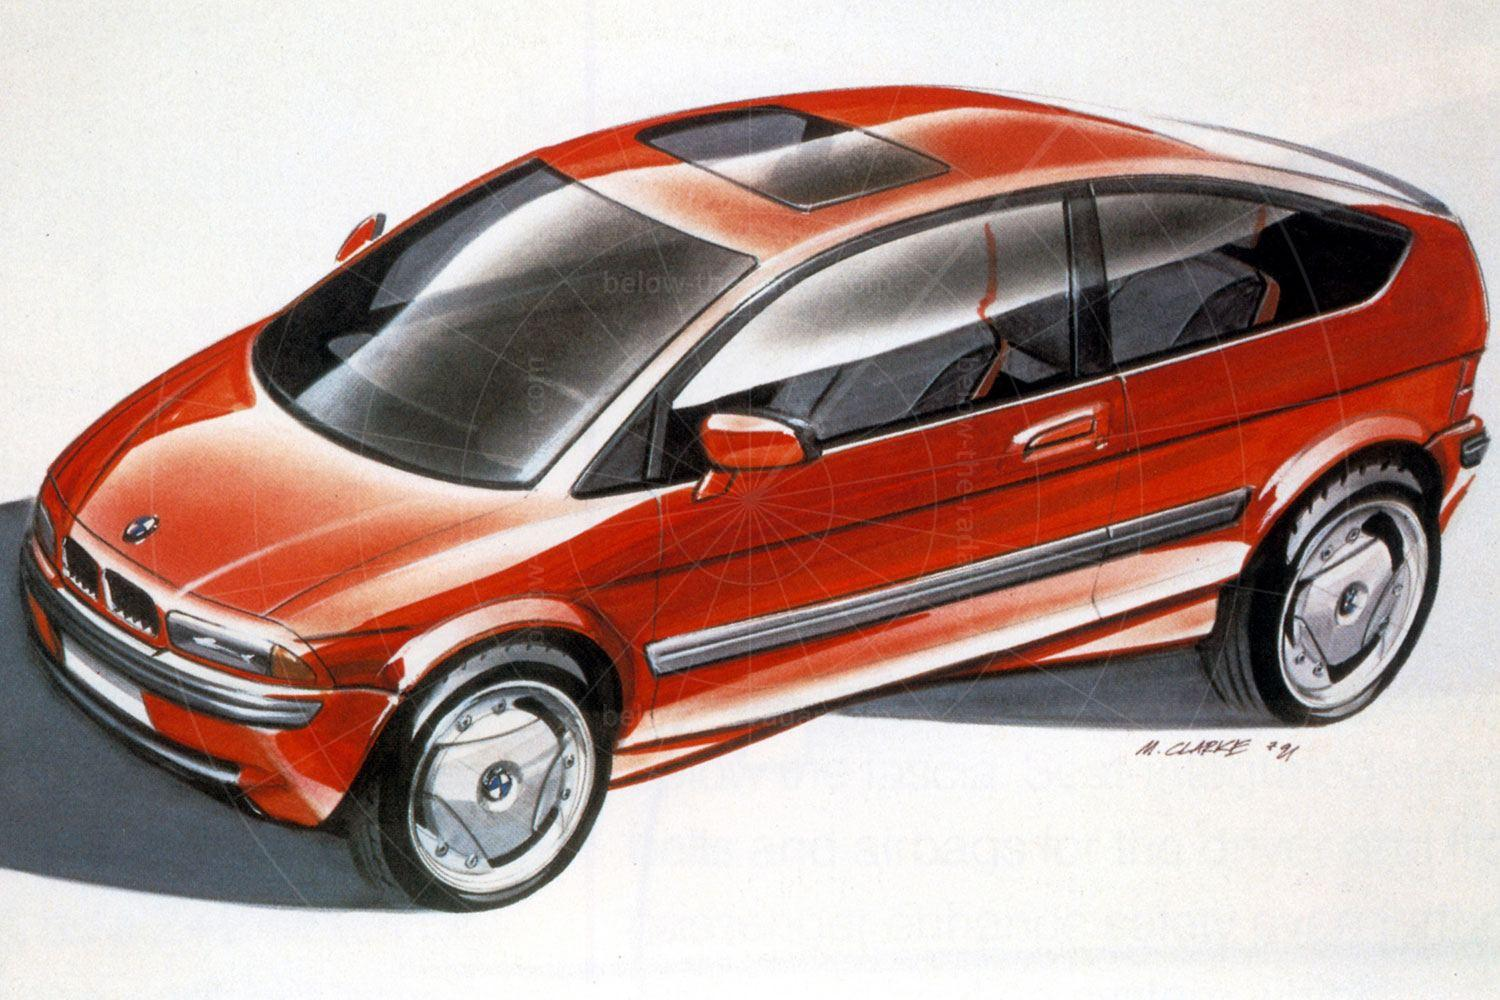 BMW E1 Mk1 design sketch